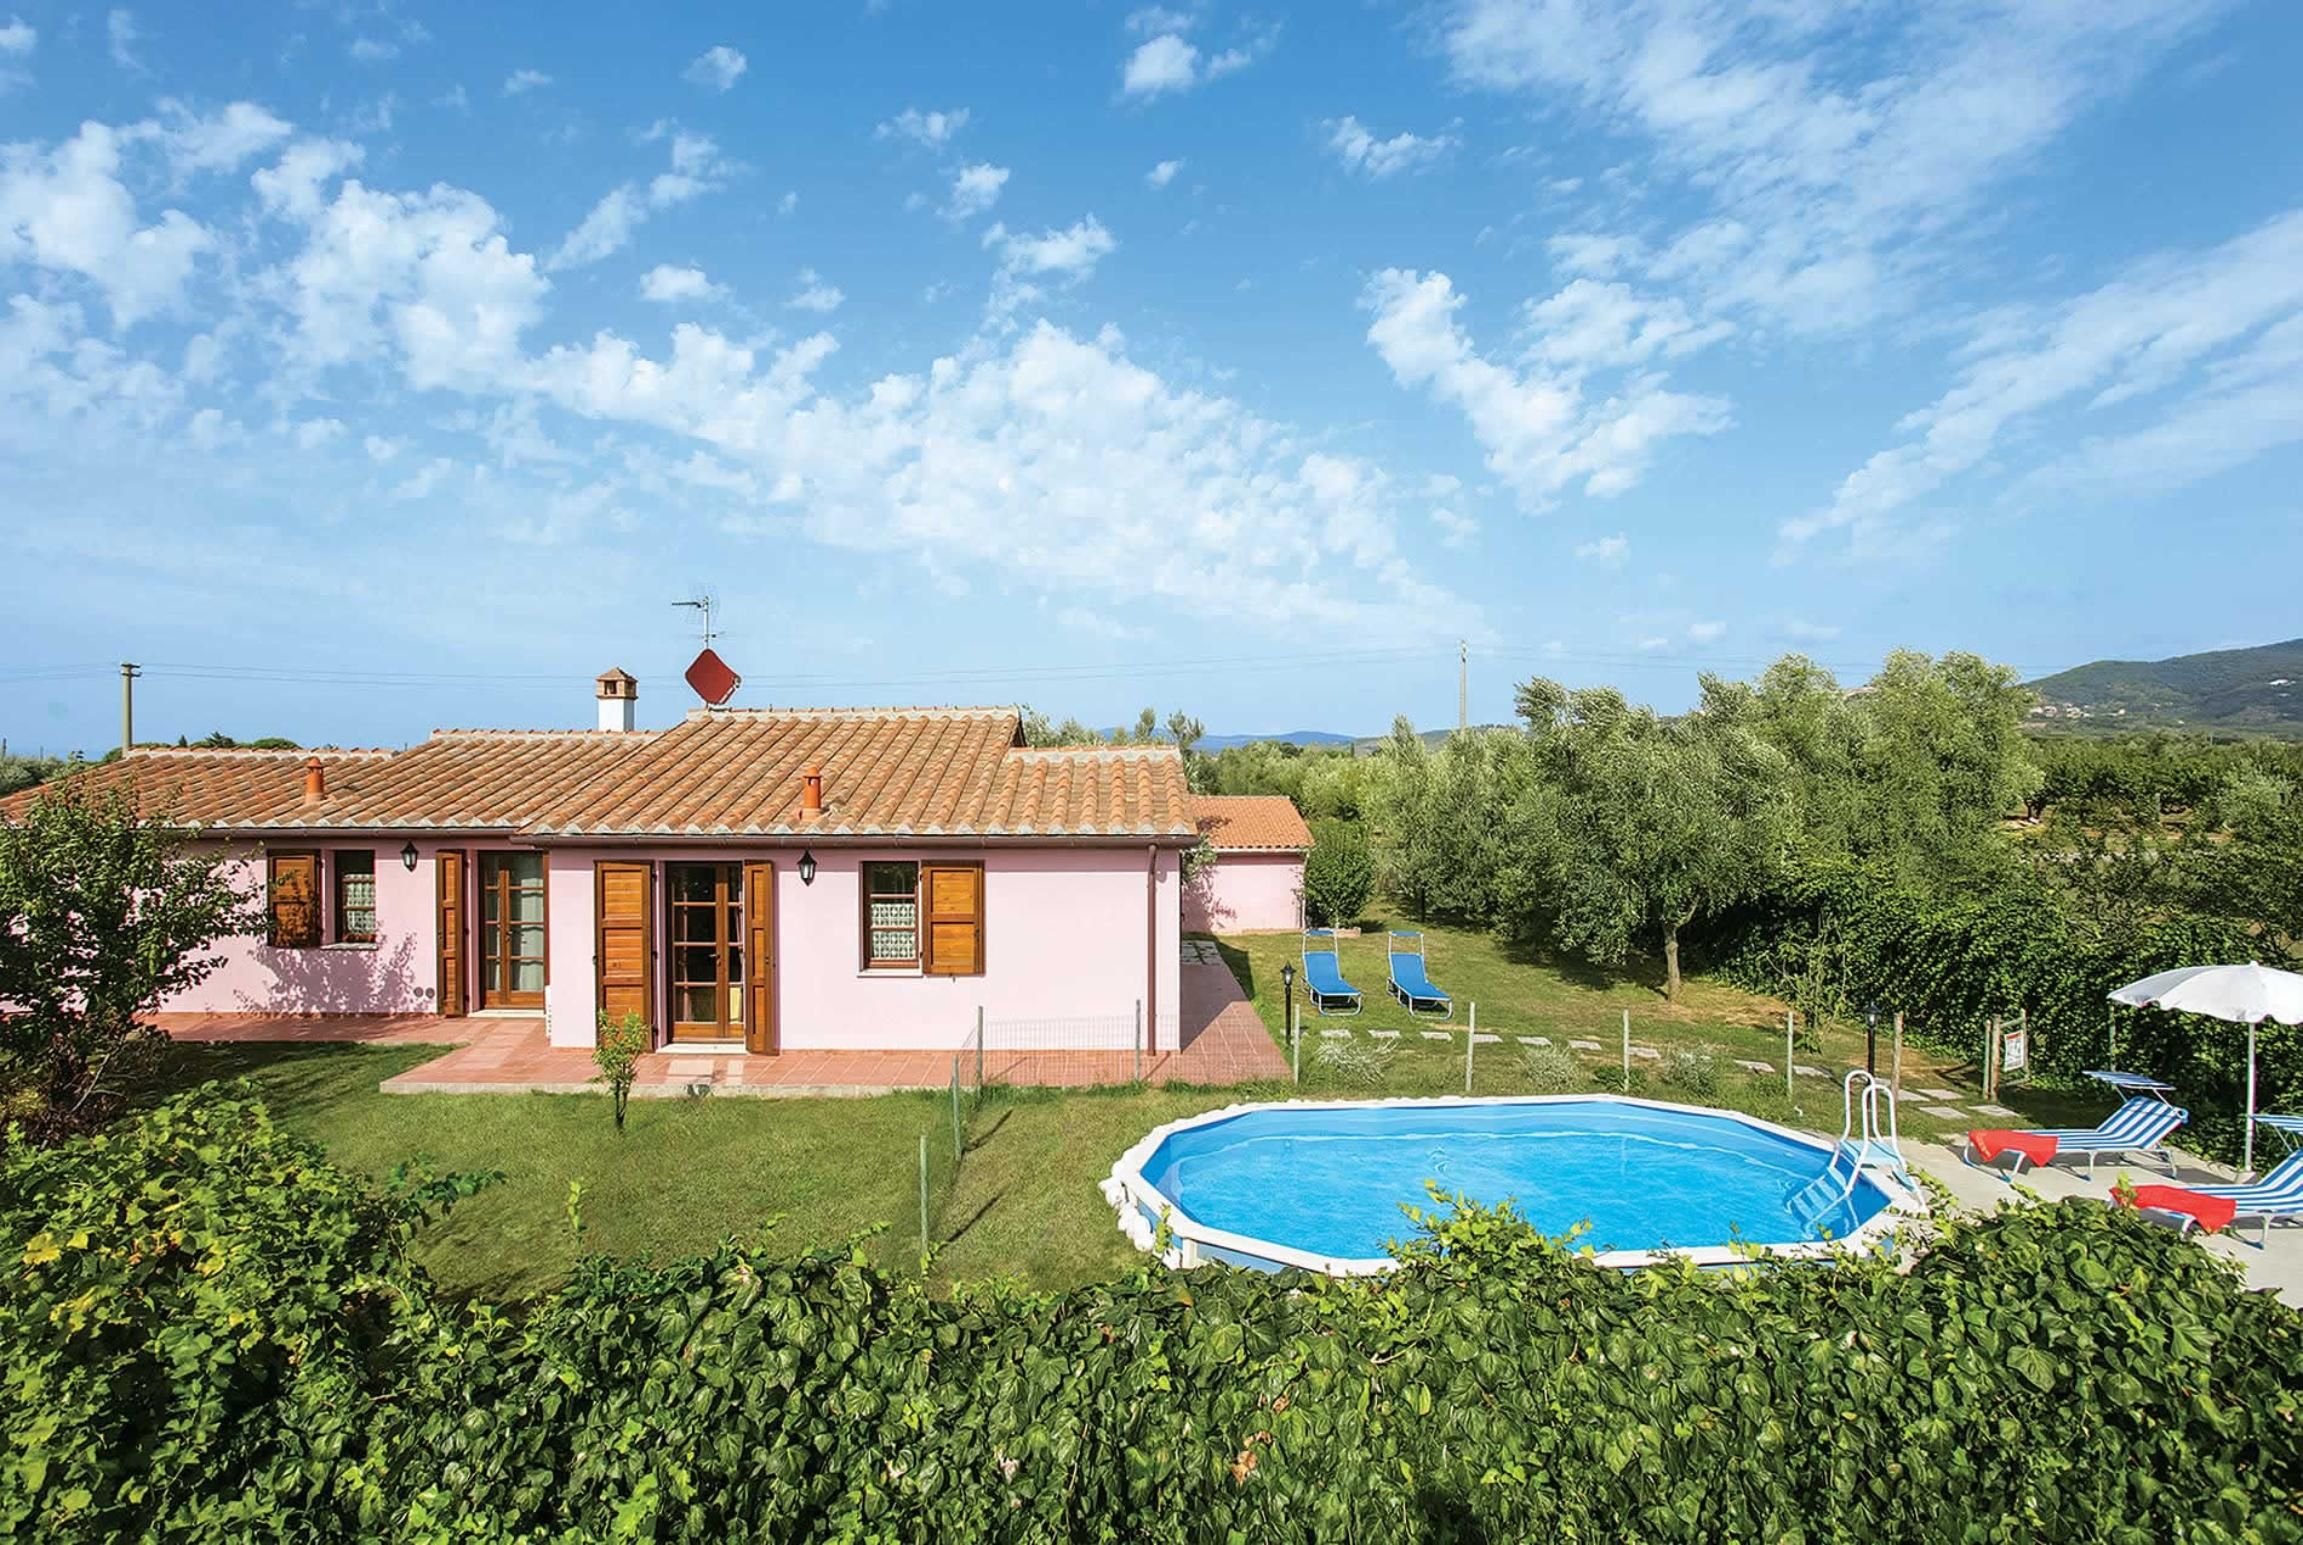 Read more about La Casetta villa